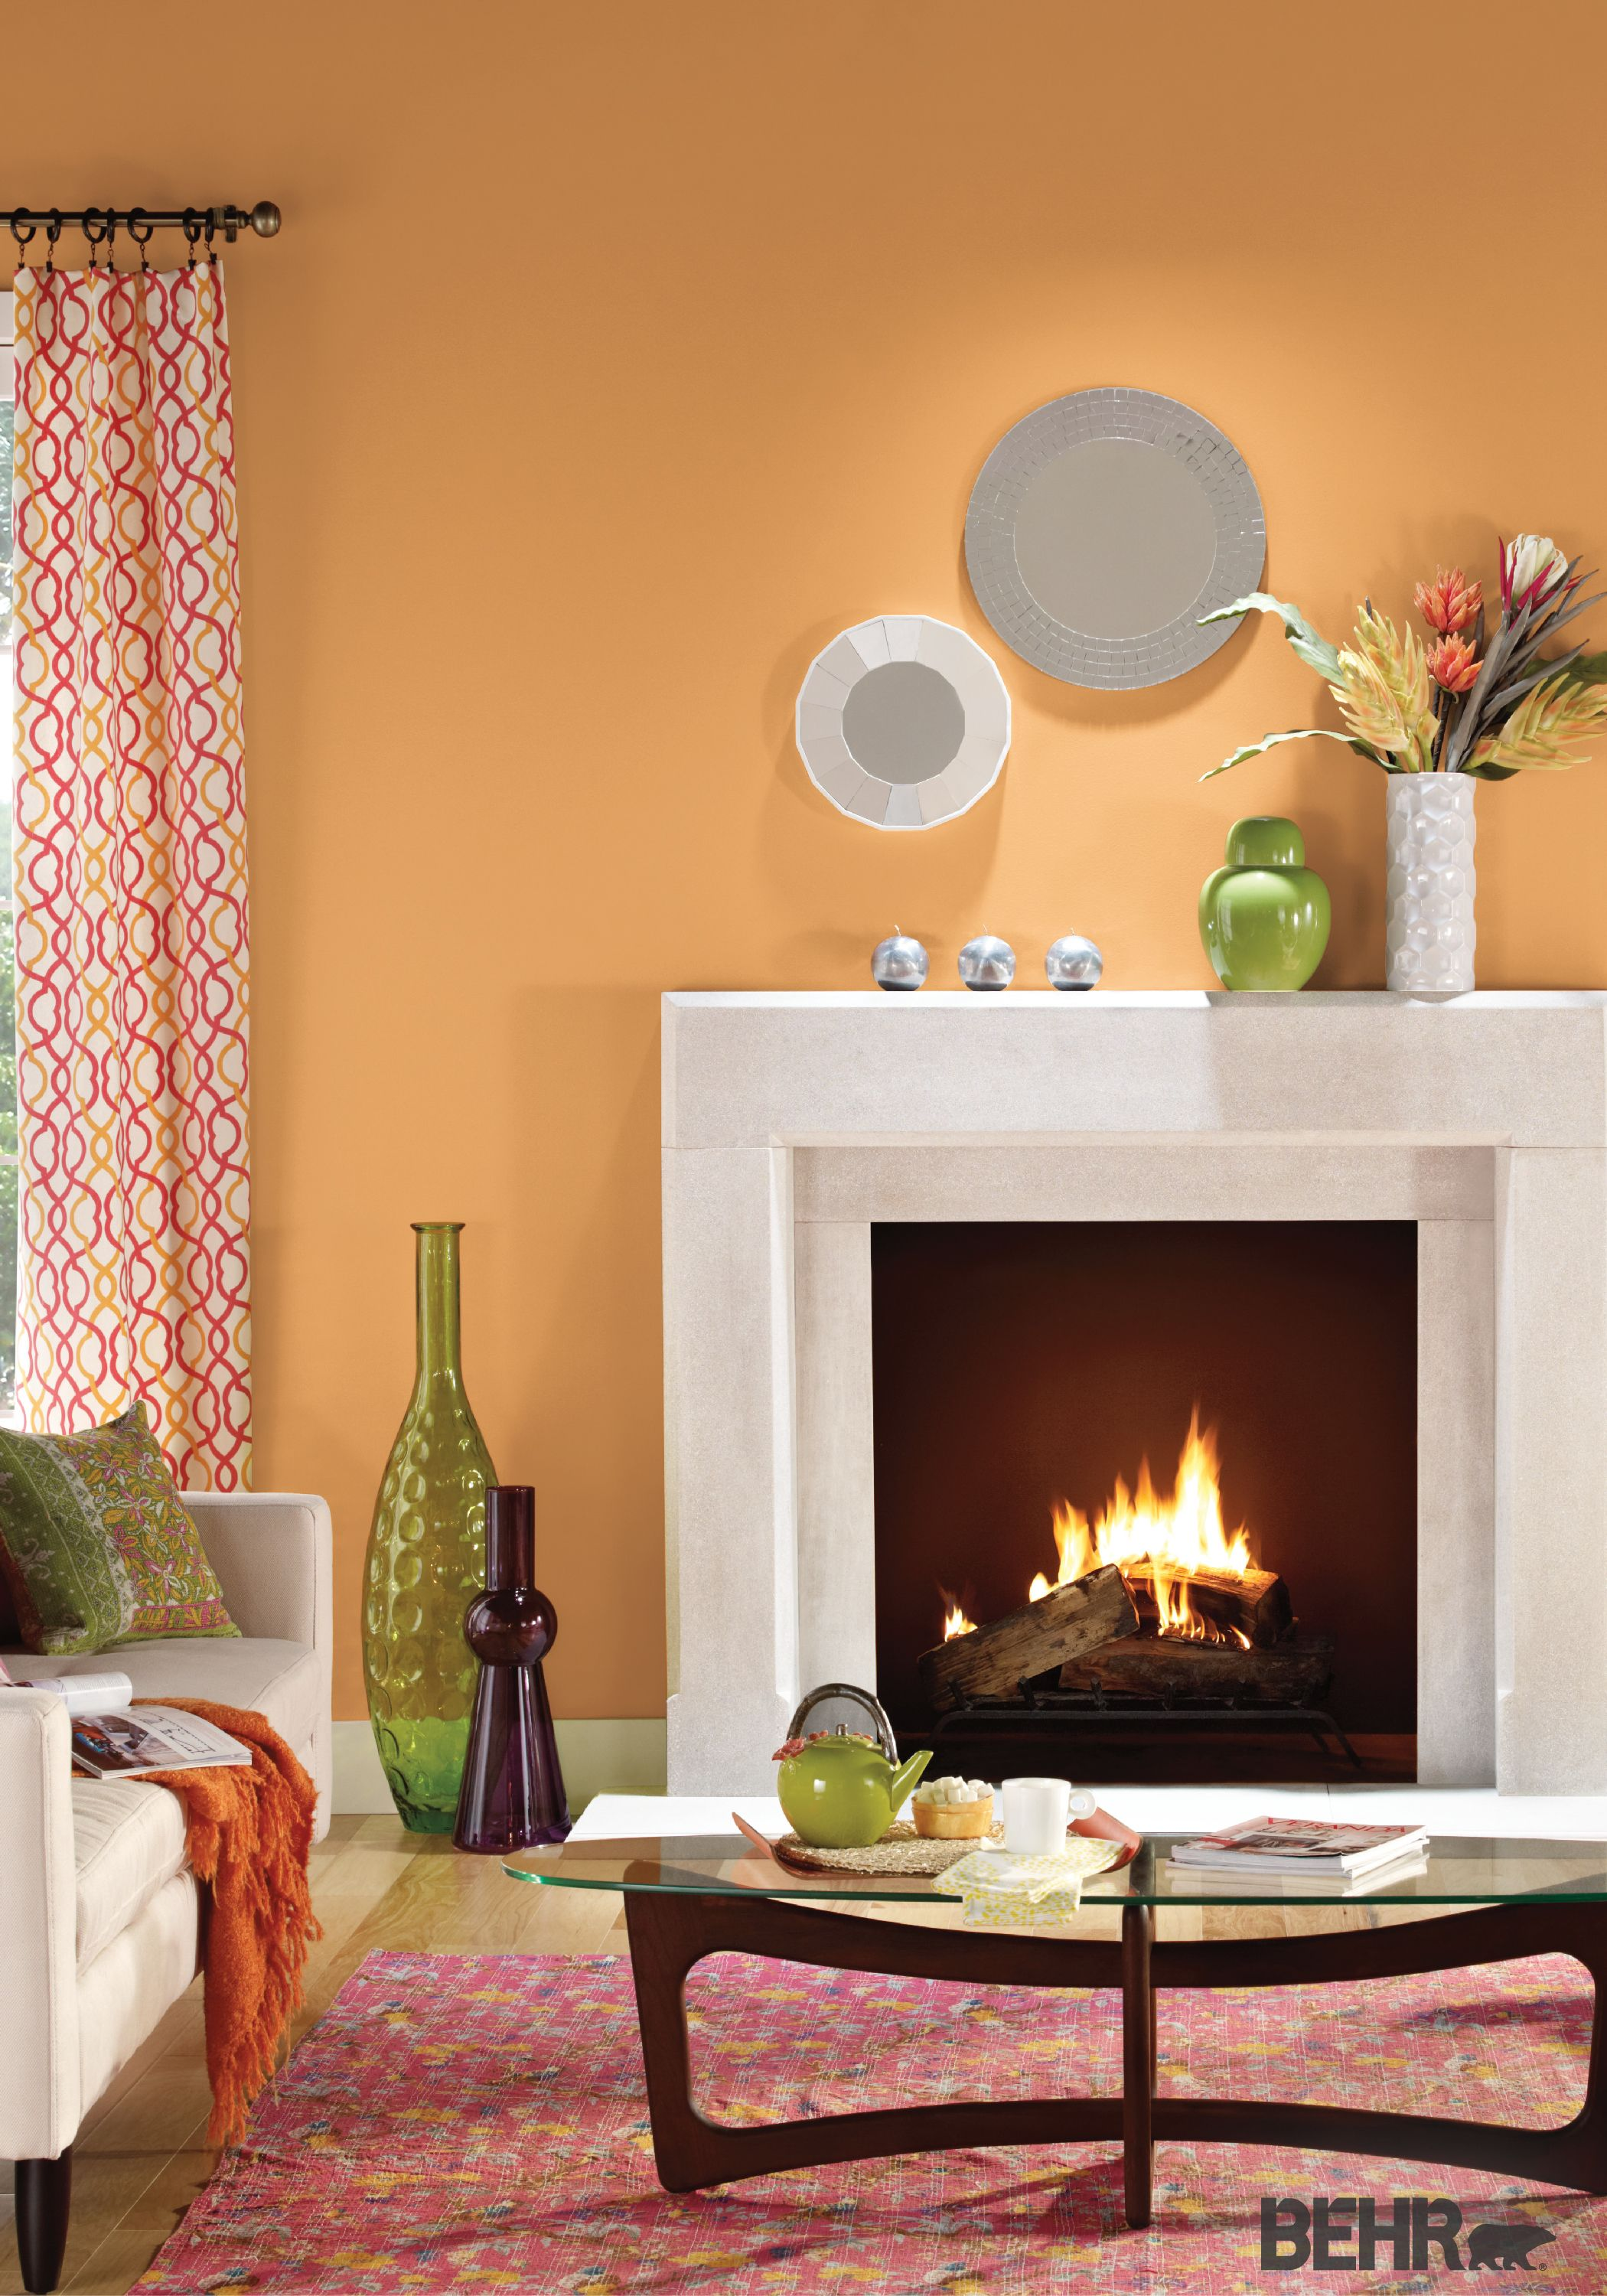 Yellow Paint For Living Room Behr Paint In Cheerful Tangerine Makes The Base For This Colorful